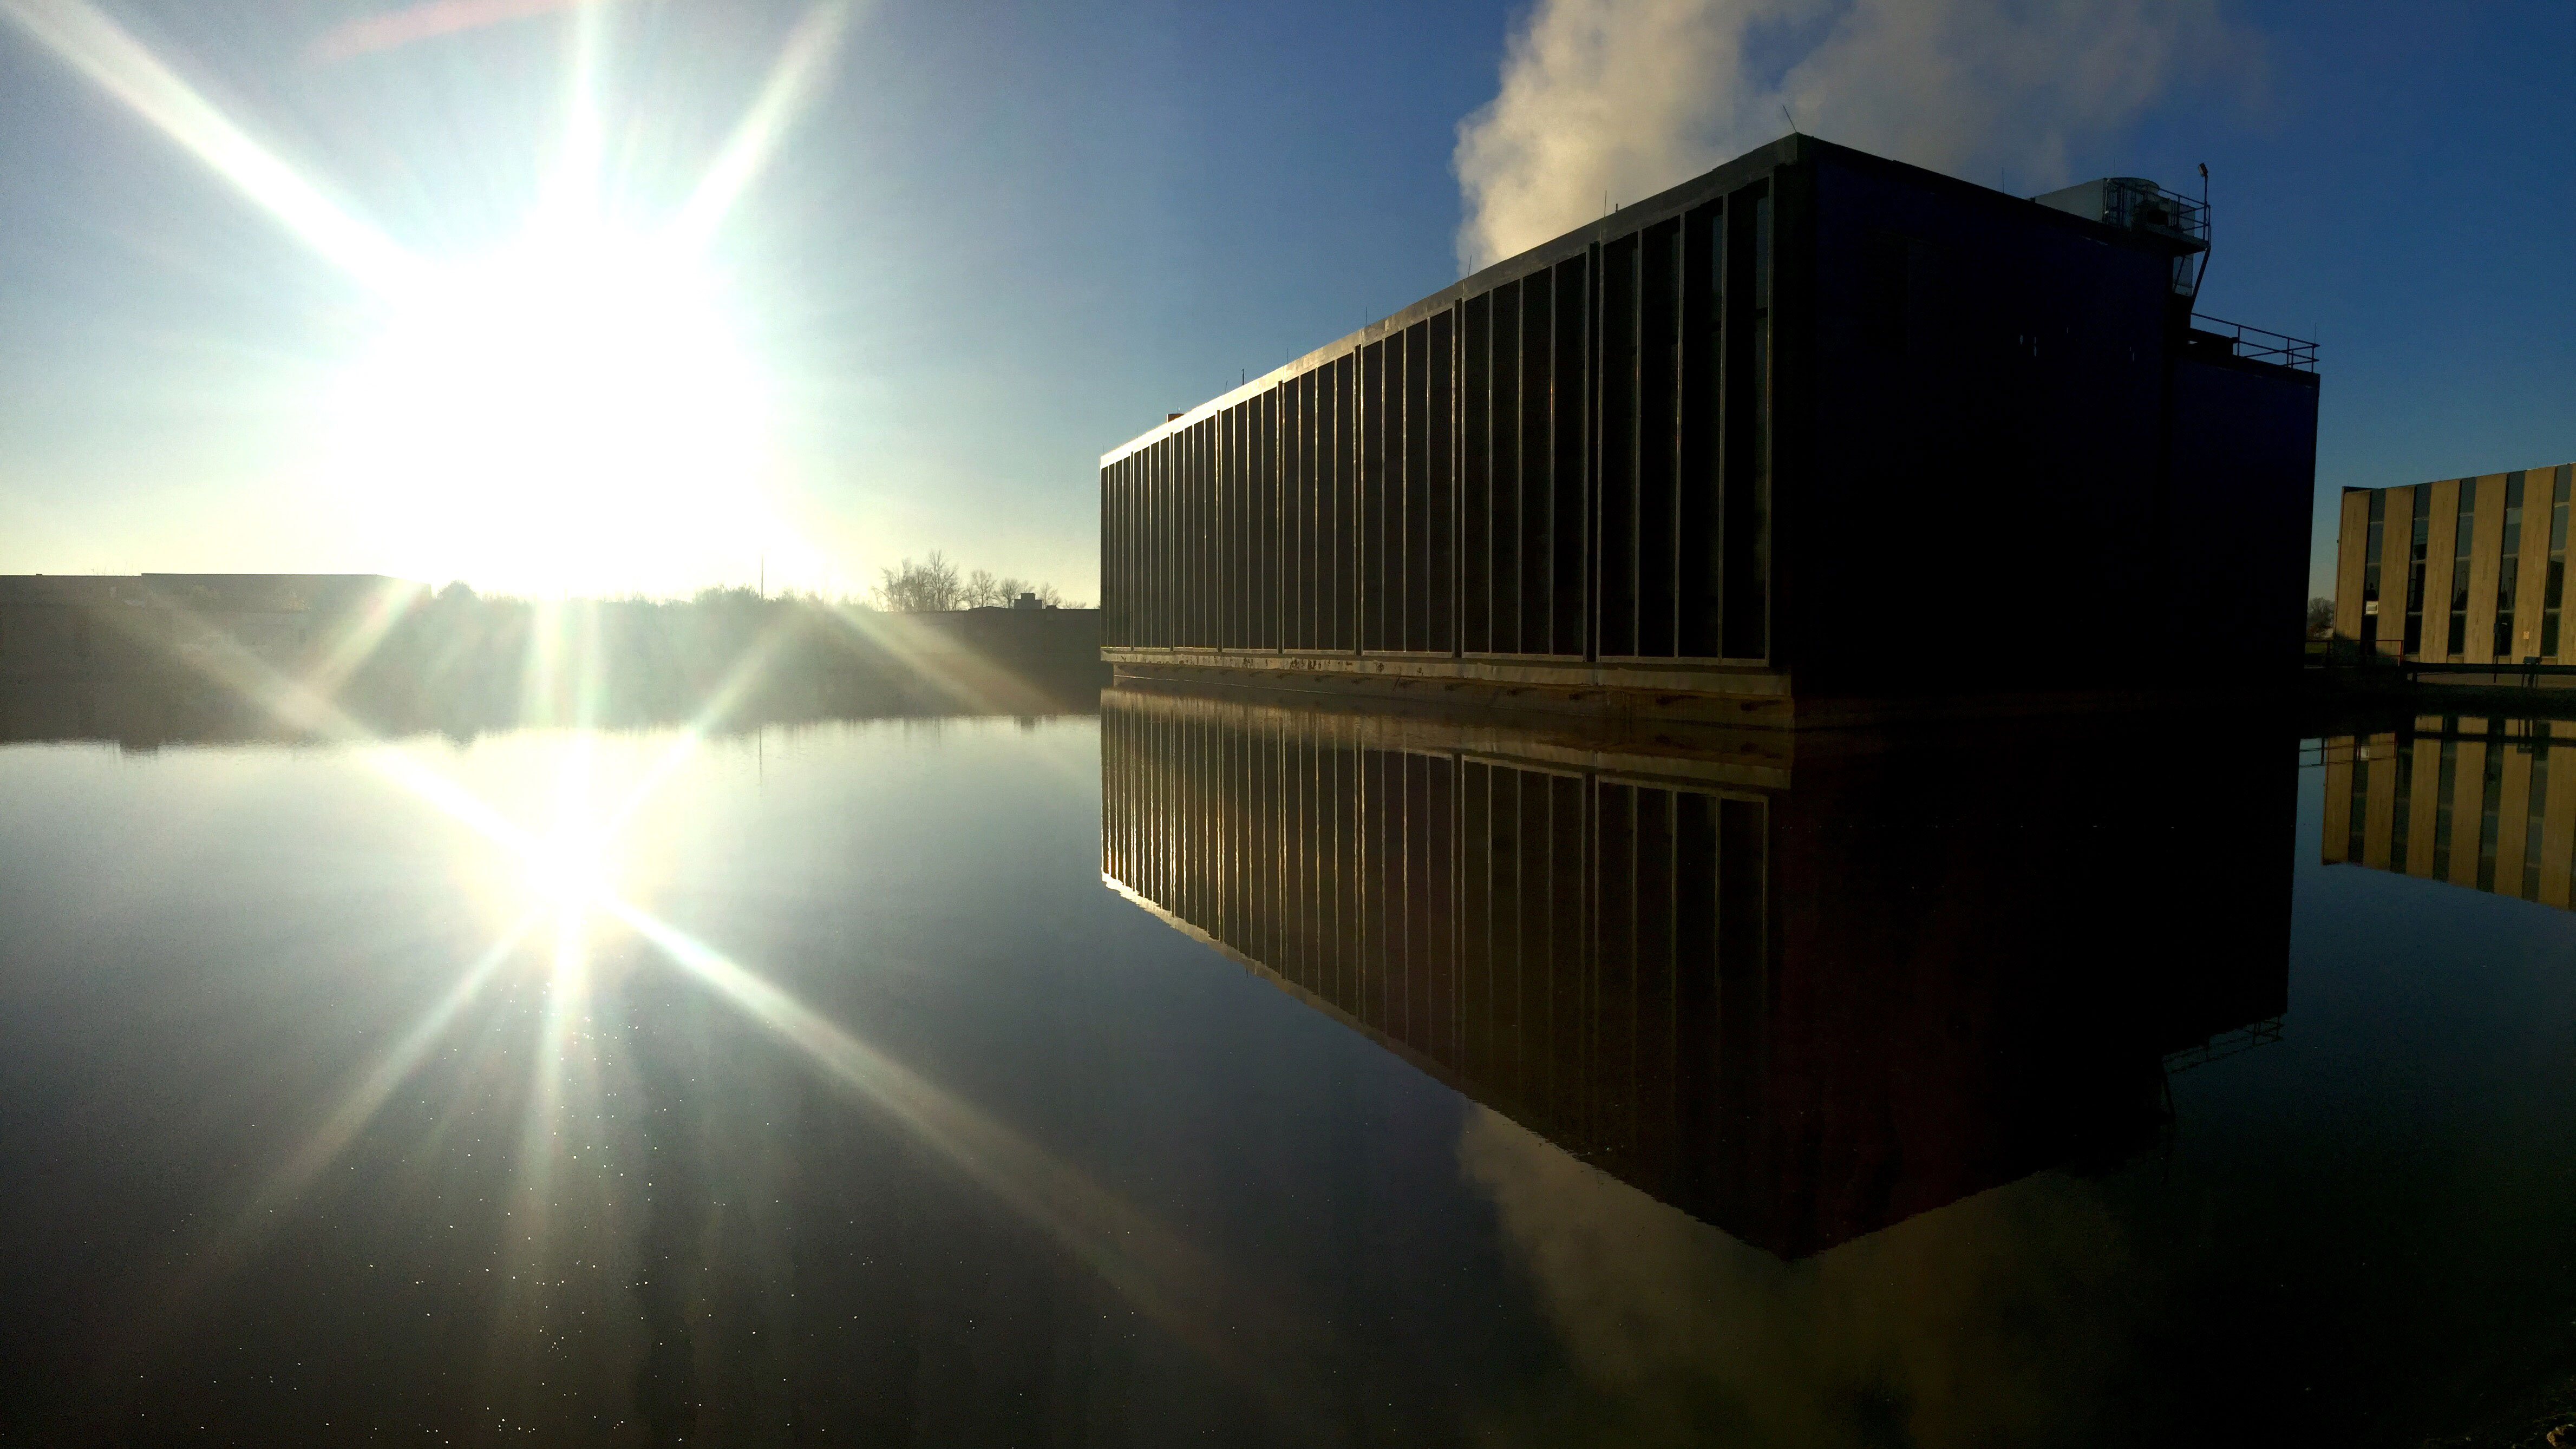 Throwback to fall: The sun shines bright on the Central Utility Building. Photo: Marty Murphy